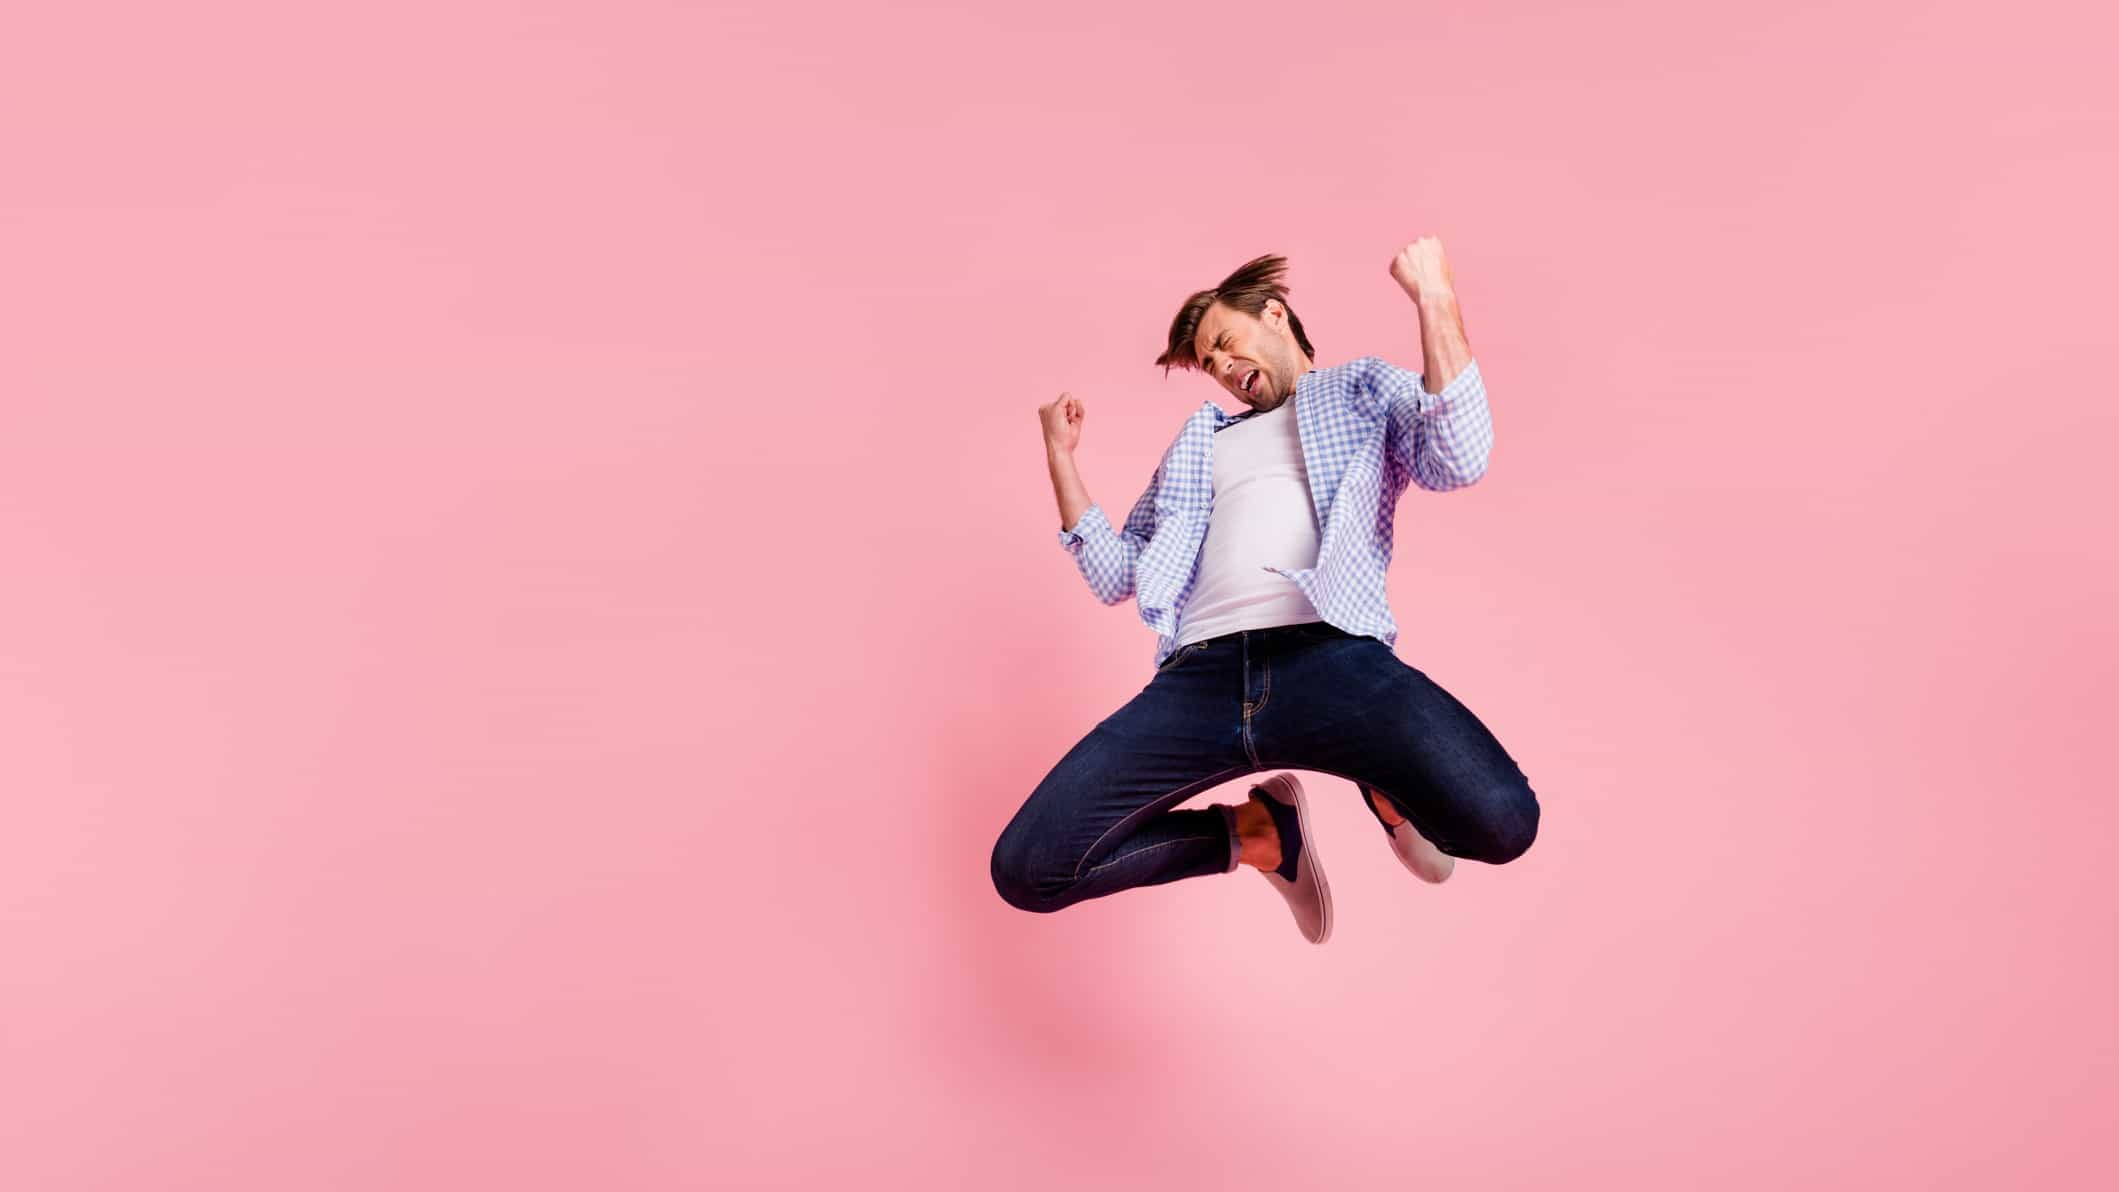 jump in asx share price represented by man jumping in the air in celebration